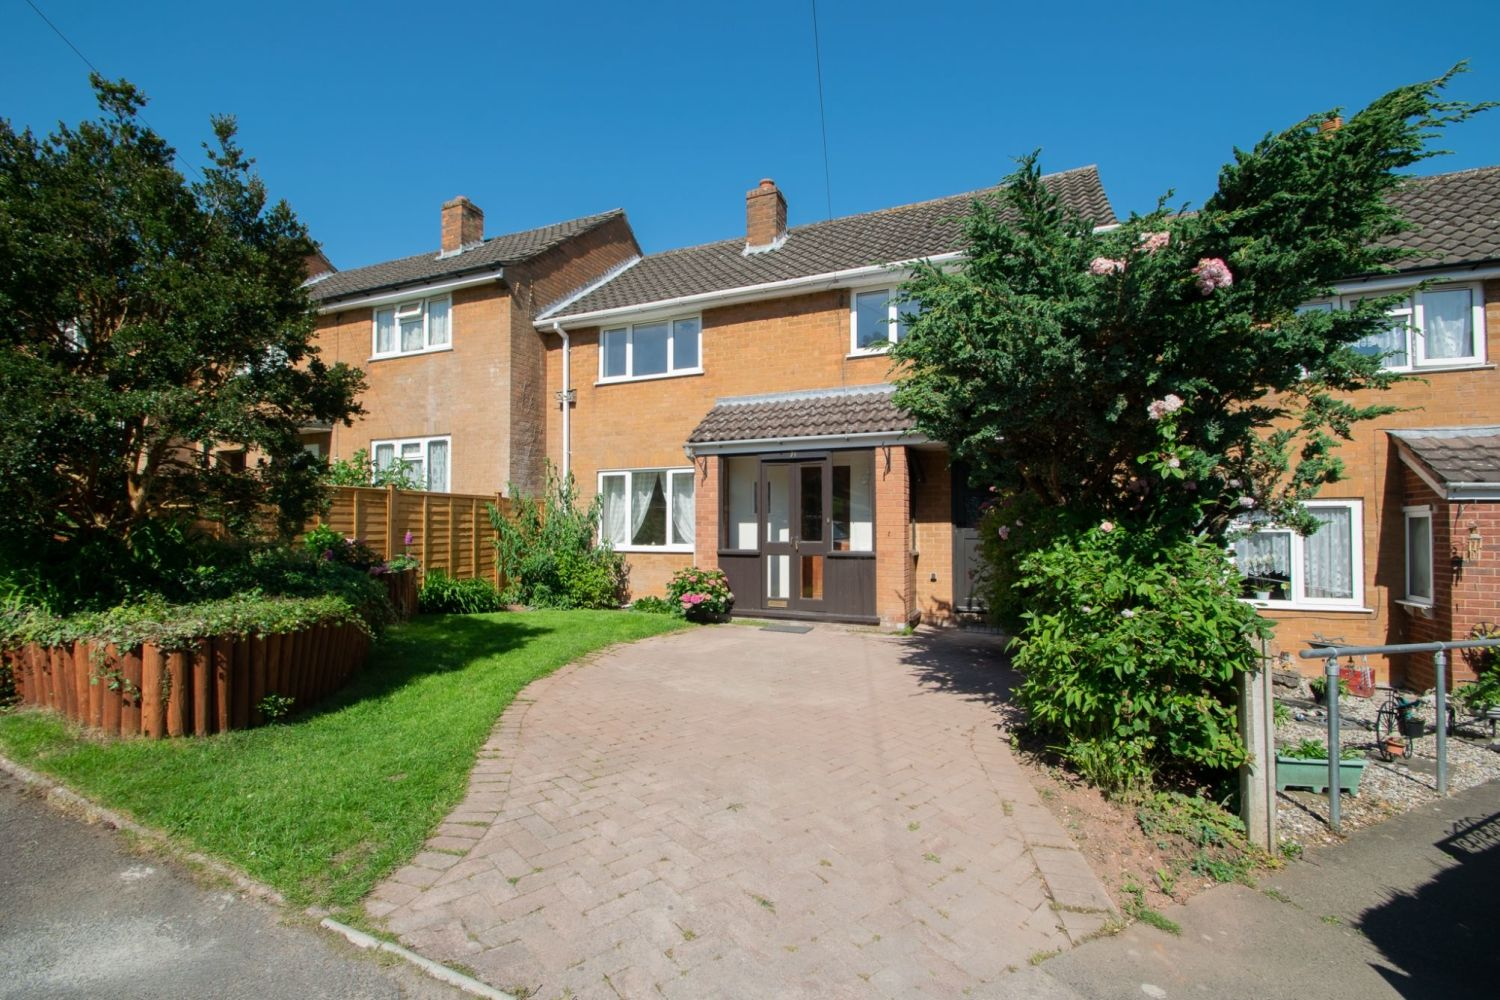 3 bed terraced for sale in Waverley Crescent, Romsley 1